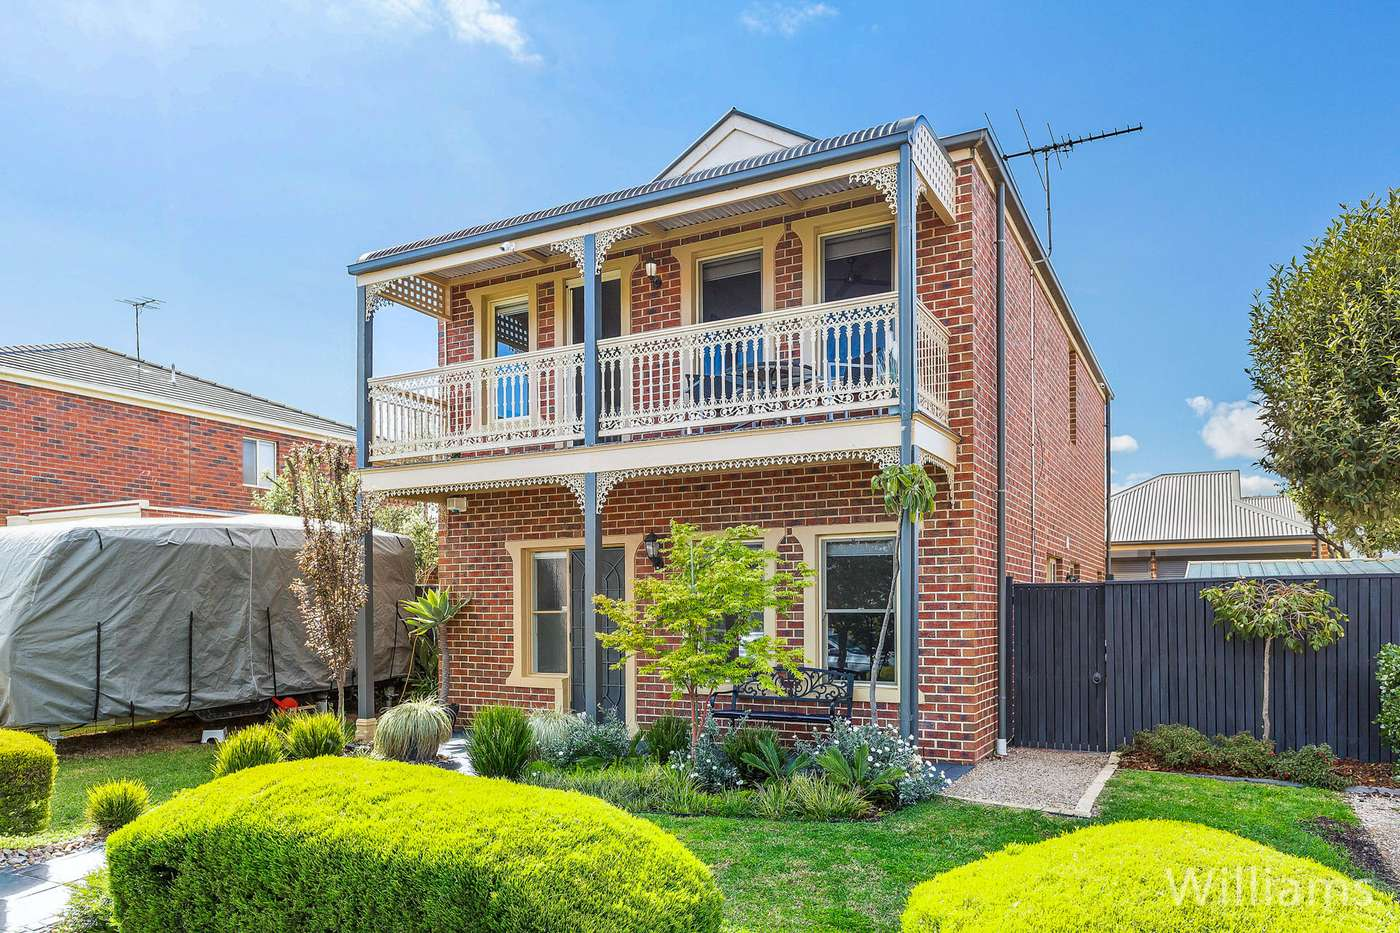 Main view of Homely house listing, 2 Teal Court, Williamstown, VIC 3016